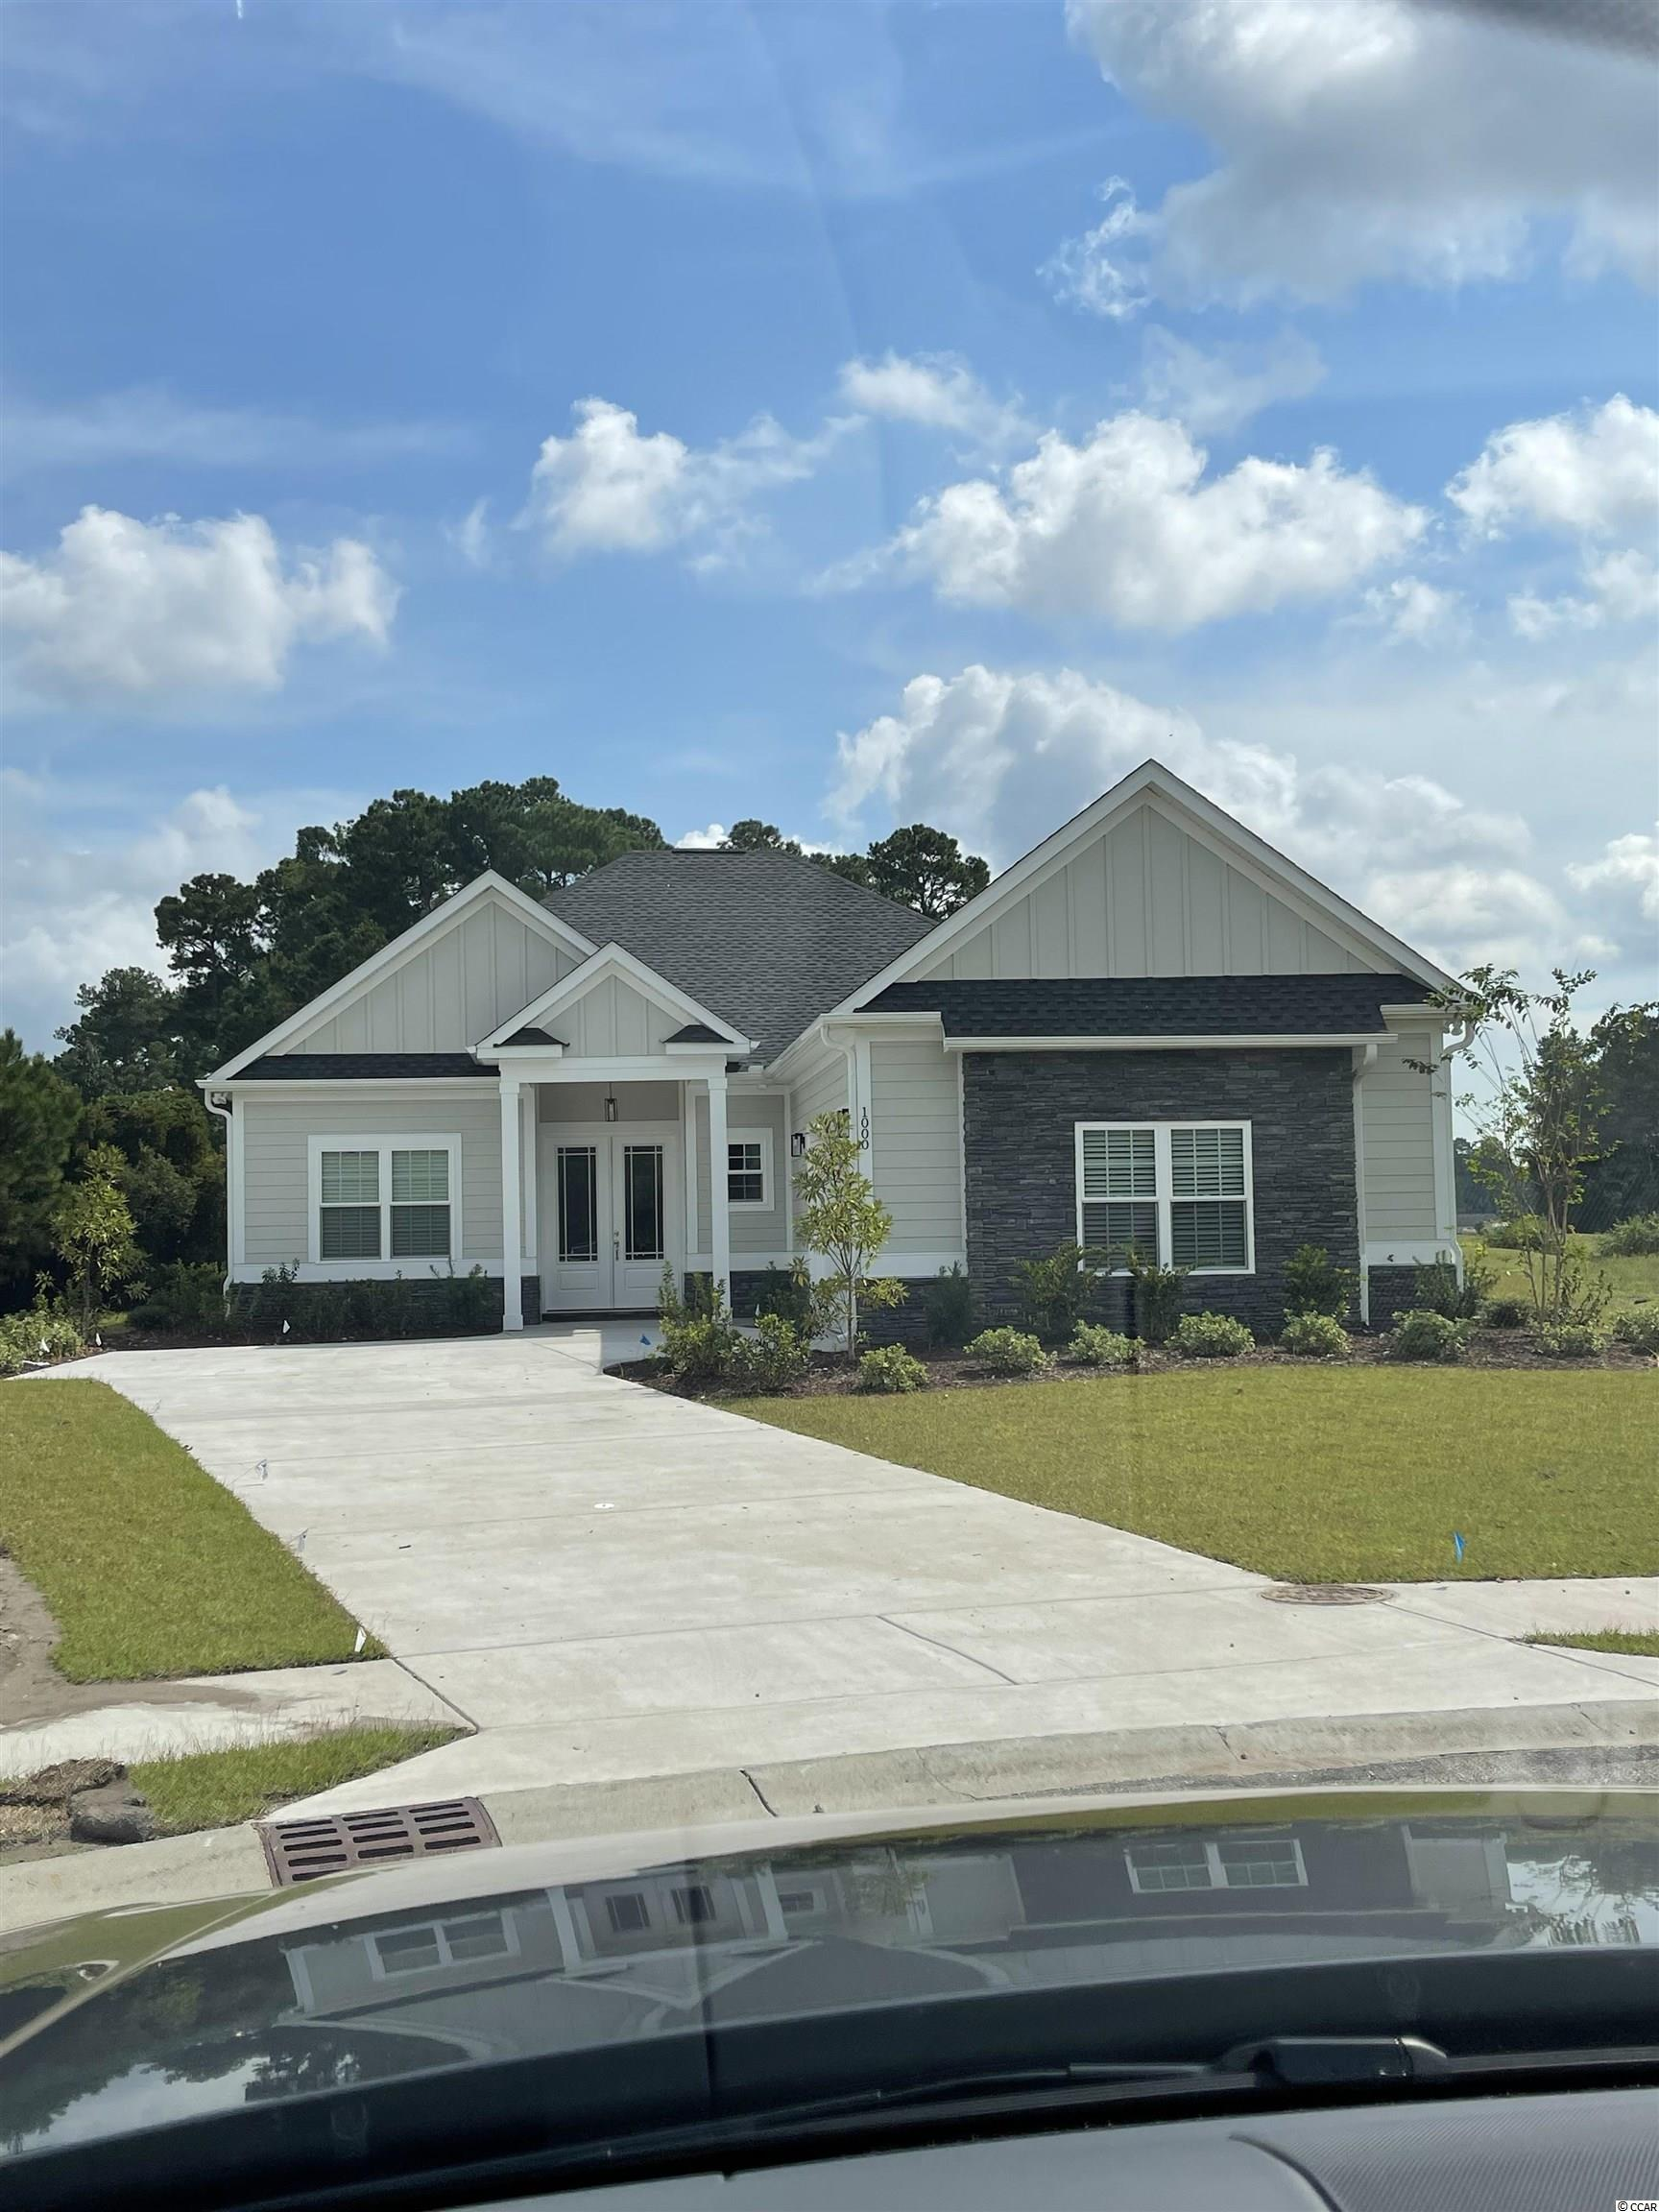 This beautiful new construction home is under construction and will be ready for a lucky buyer in August 2021! Located in the Wild Wing Plantation community that has a World class golf course and an amenities center that is amazing!. As you will enter this perfectly laid out open floor plan home will notice right away the upgrades and quality of work are above and beyond other larger builders in the area. This is a 100% custom home and it shows!. With LVP flooring throughout, Hardie board siding, upgraded countertops, tankless gas water heater, soft close all wood cabinets, all showers are tile including a large shower and tub in the master bathroom, custom wood shelving in your oversized master walk in closet, large tray ceilings, appliances credit will be given, crown molding and upgraded lighting package. Community has two entrances/exits which makes for easy access to all shopping, restaurants, medical facilities, Coastal Carolina University and two Highways for a quick drive to anywhere on the beach!. Buyers if purchase in time will be given choices for certain finishes. Pictures are of a completed similar home in the community. Book your showing today as you will not be disappointed! Located on a quiet cul de sac and golf course!